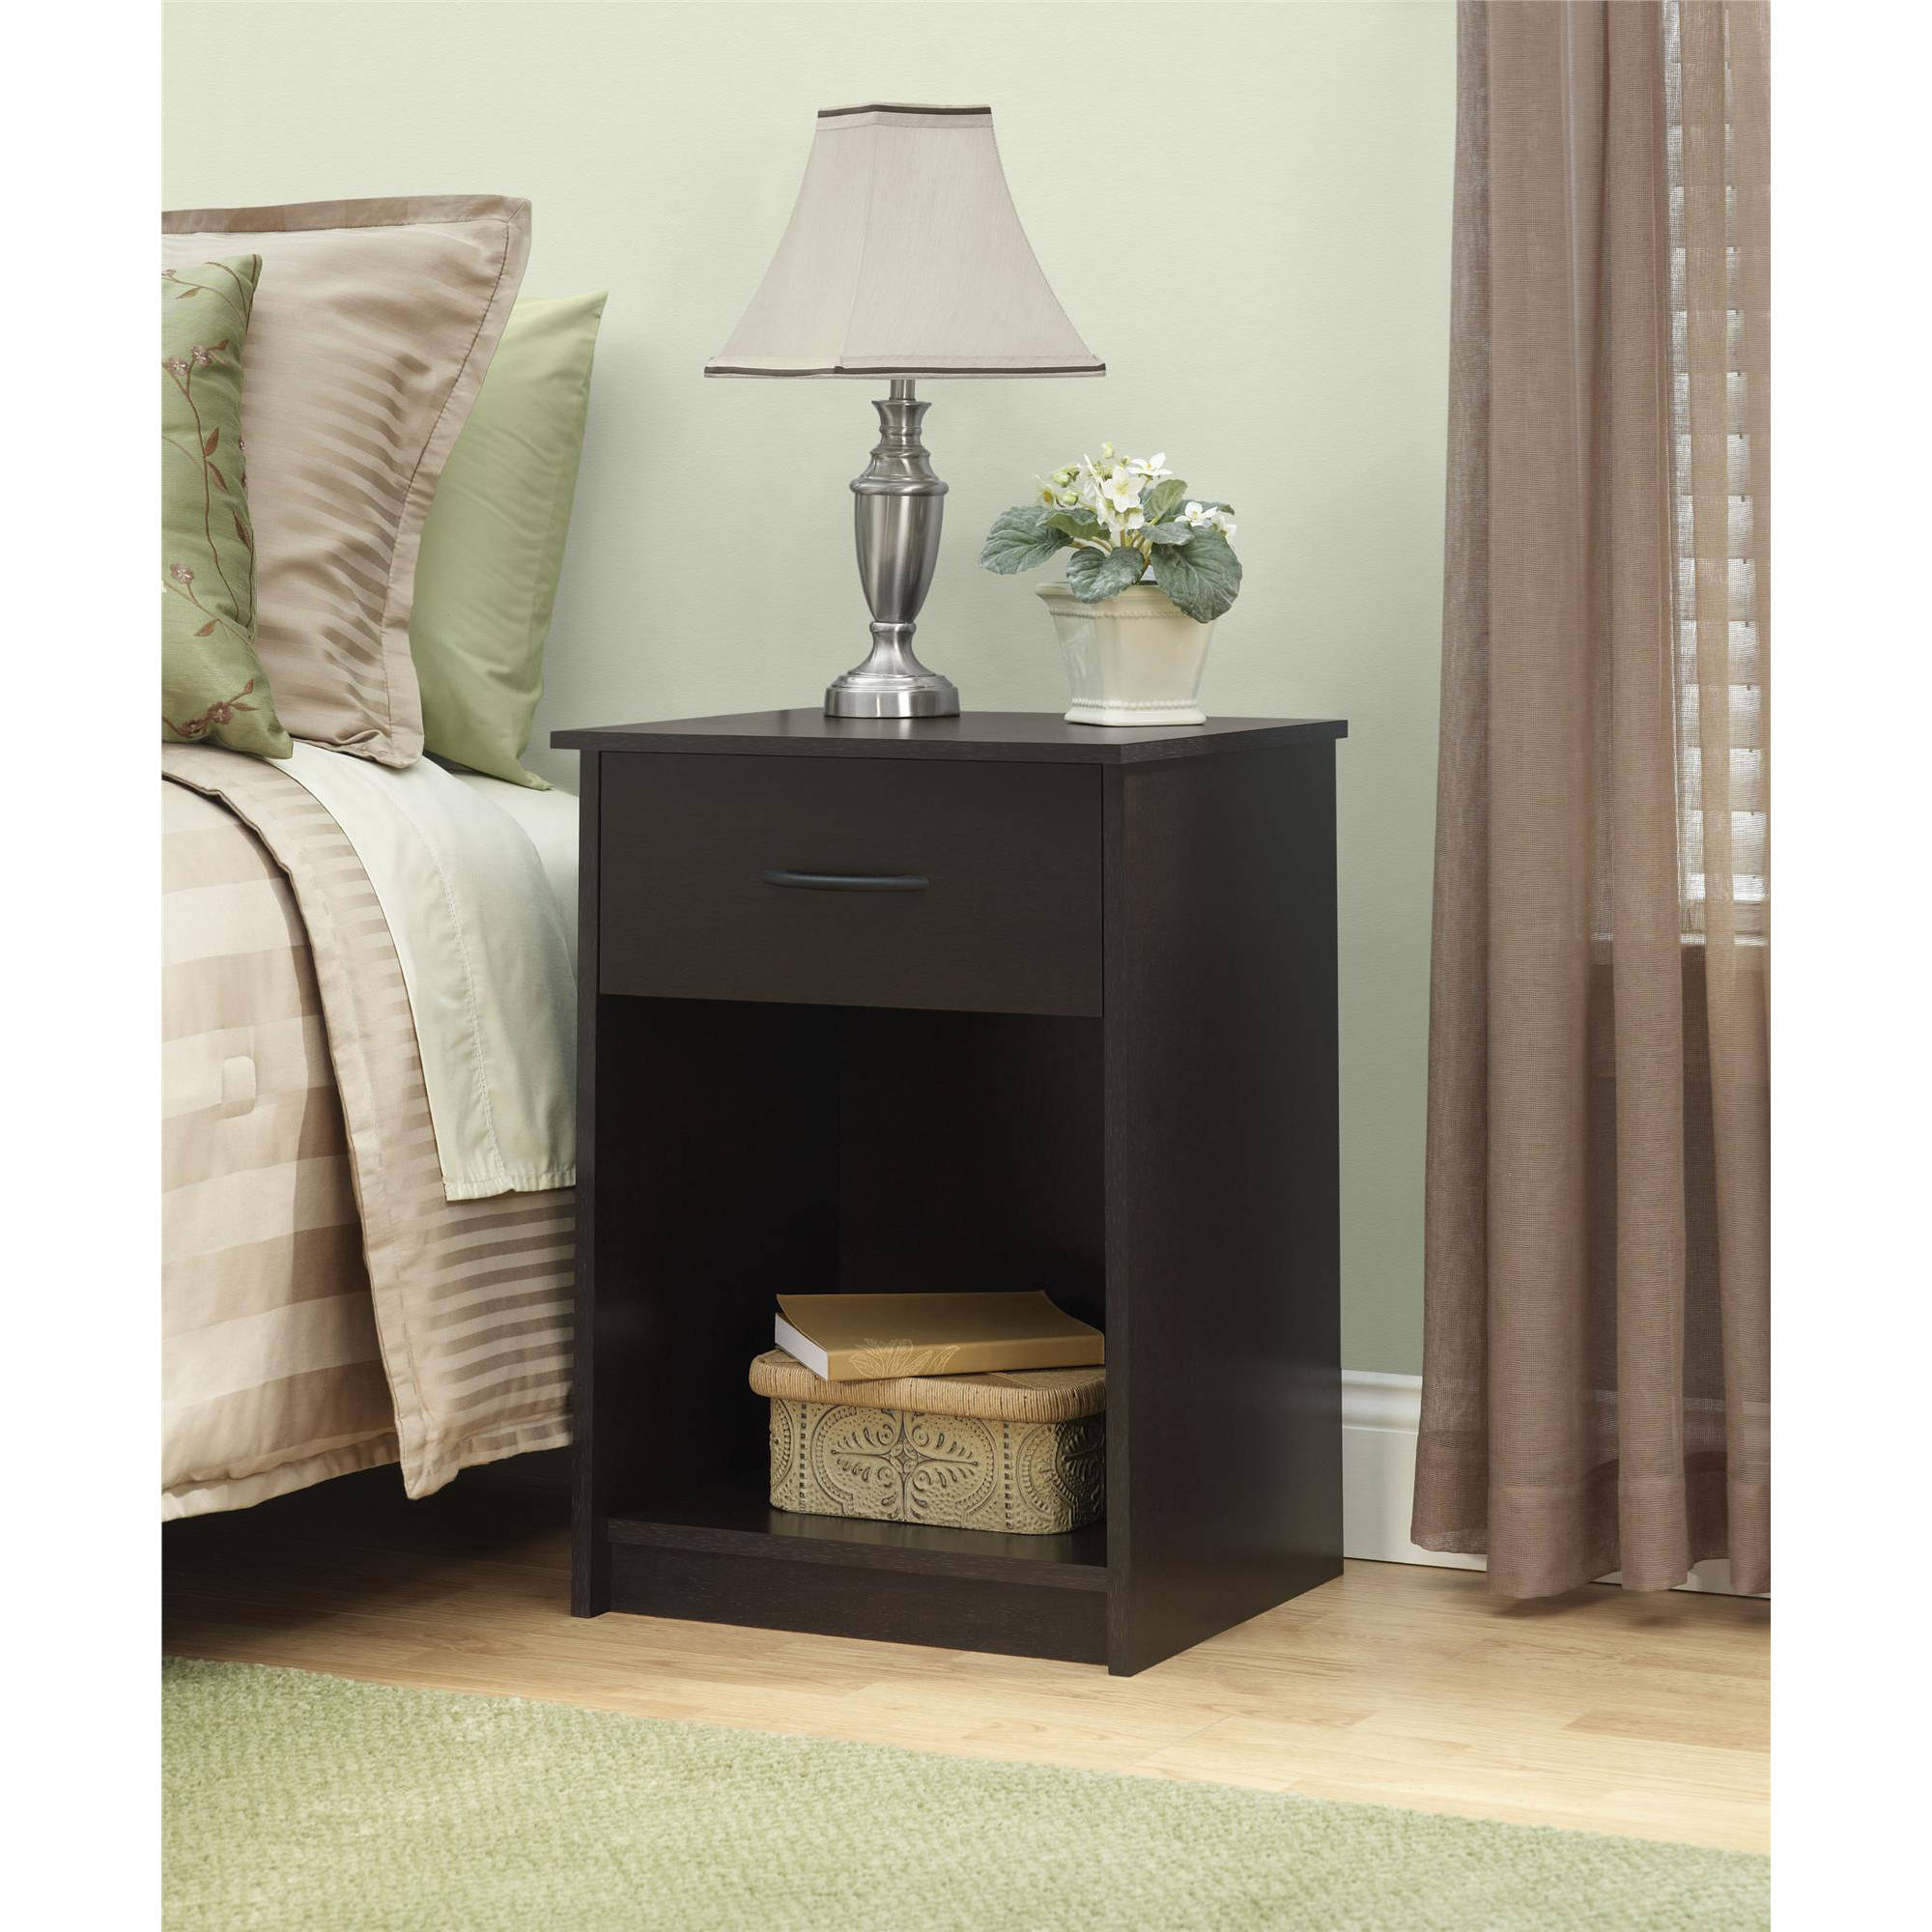 winsome timmy nightstand accent table black small vinyl tablecloth acrylic side high end tables vintage legs ashley furniture bookcase nautical themed ceiling lights outdoor